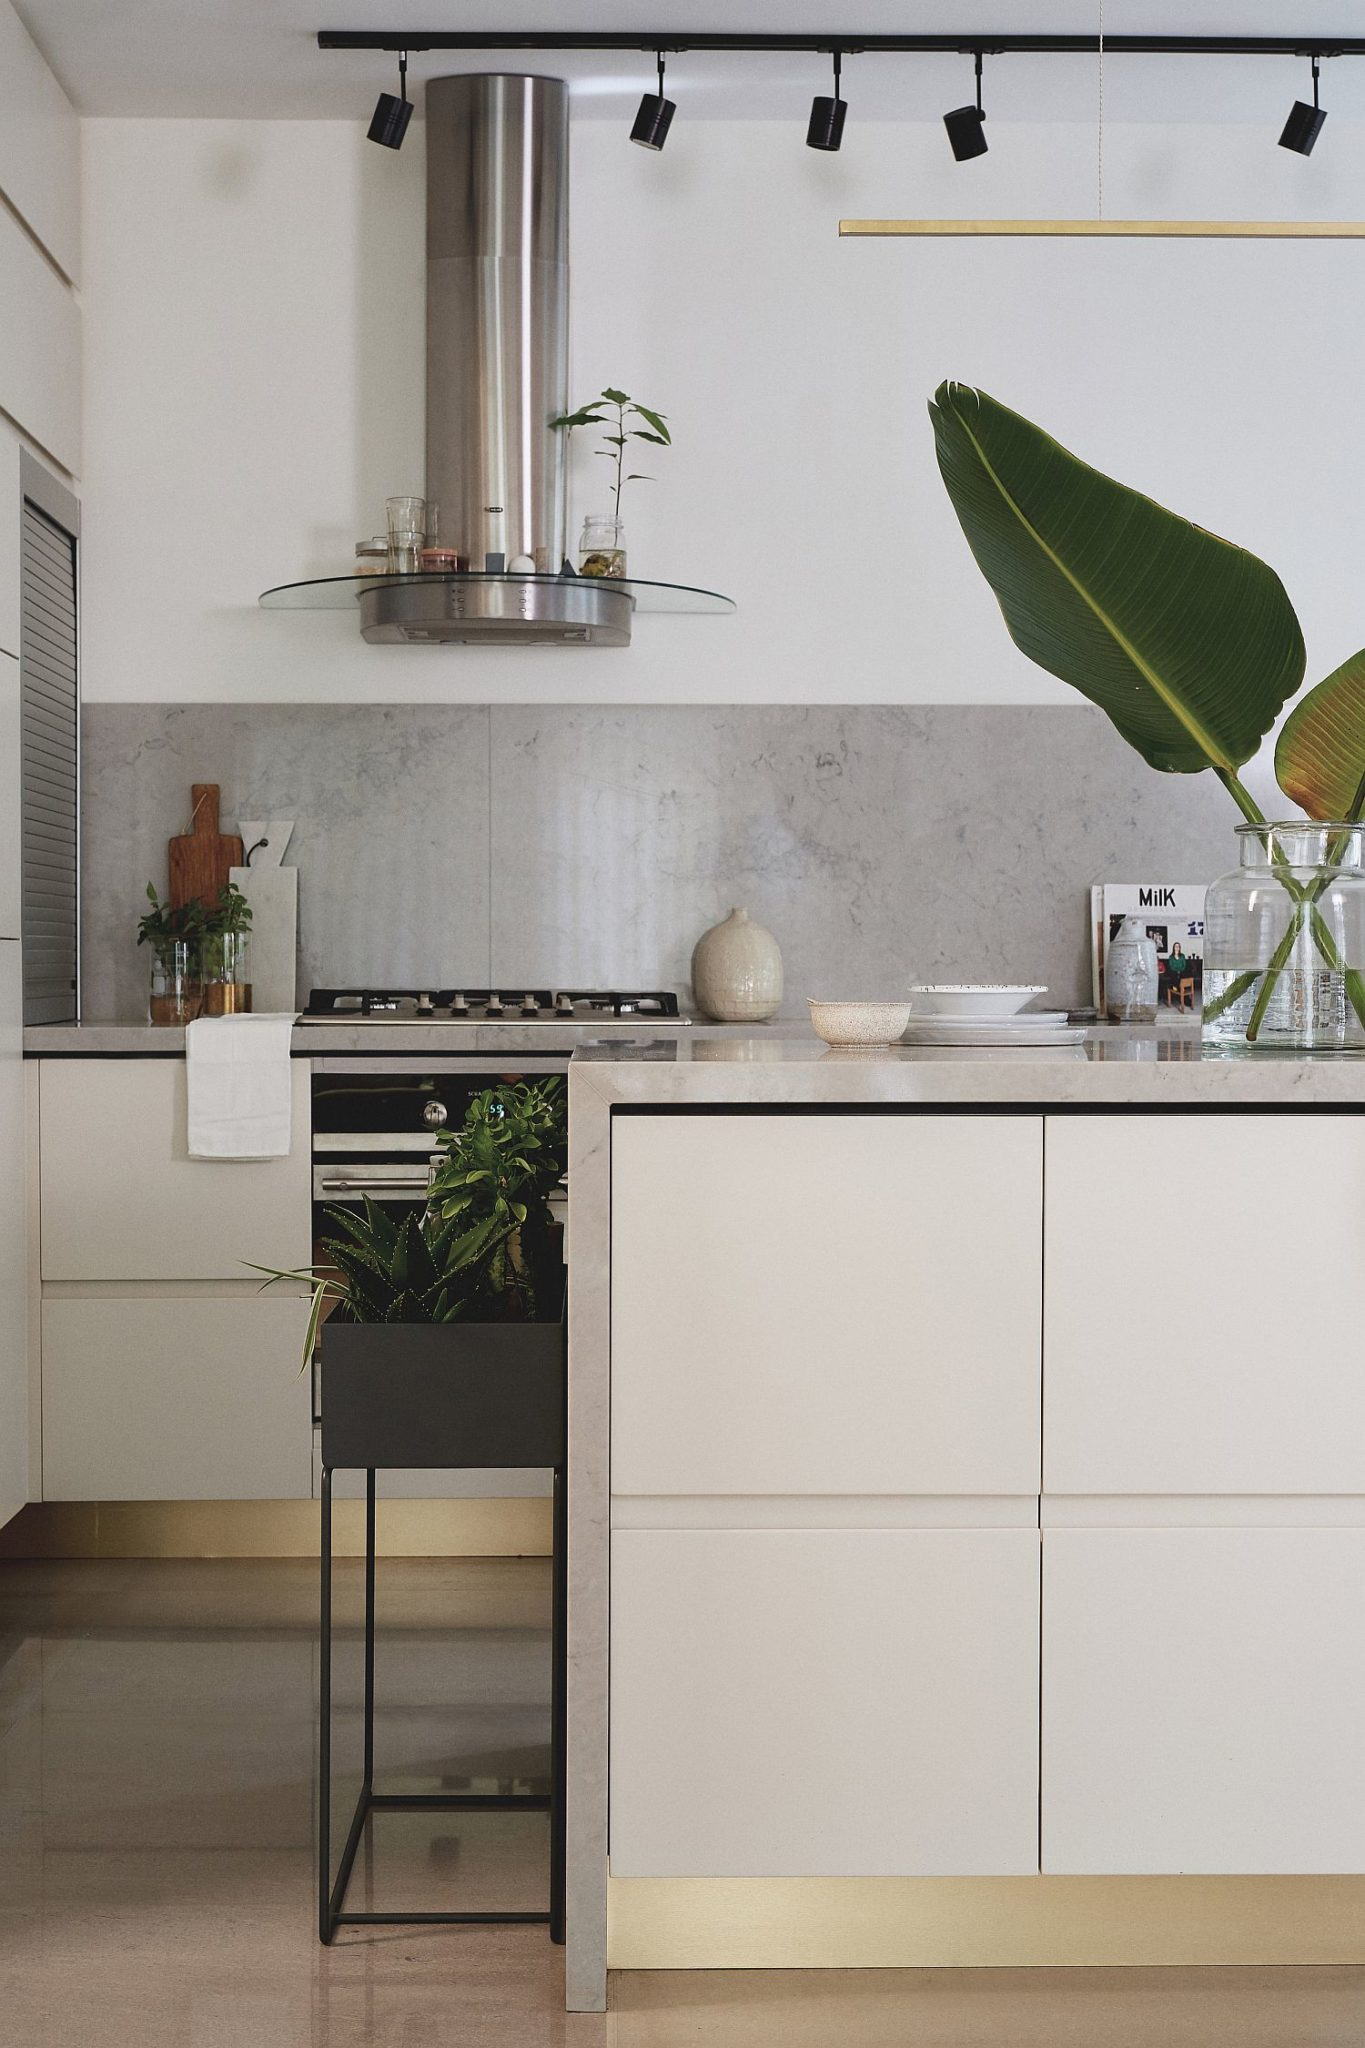 Polished edges of the kitchen with metal shelves and surfaces